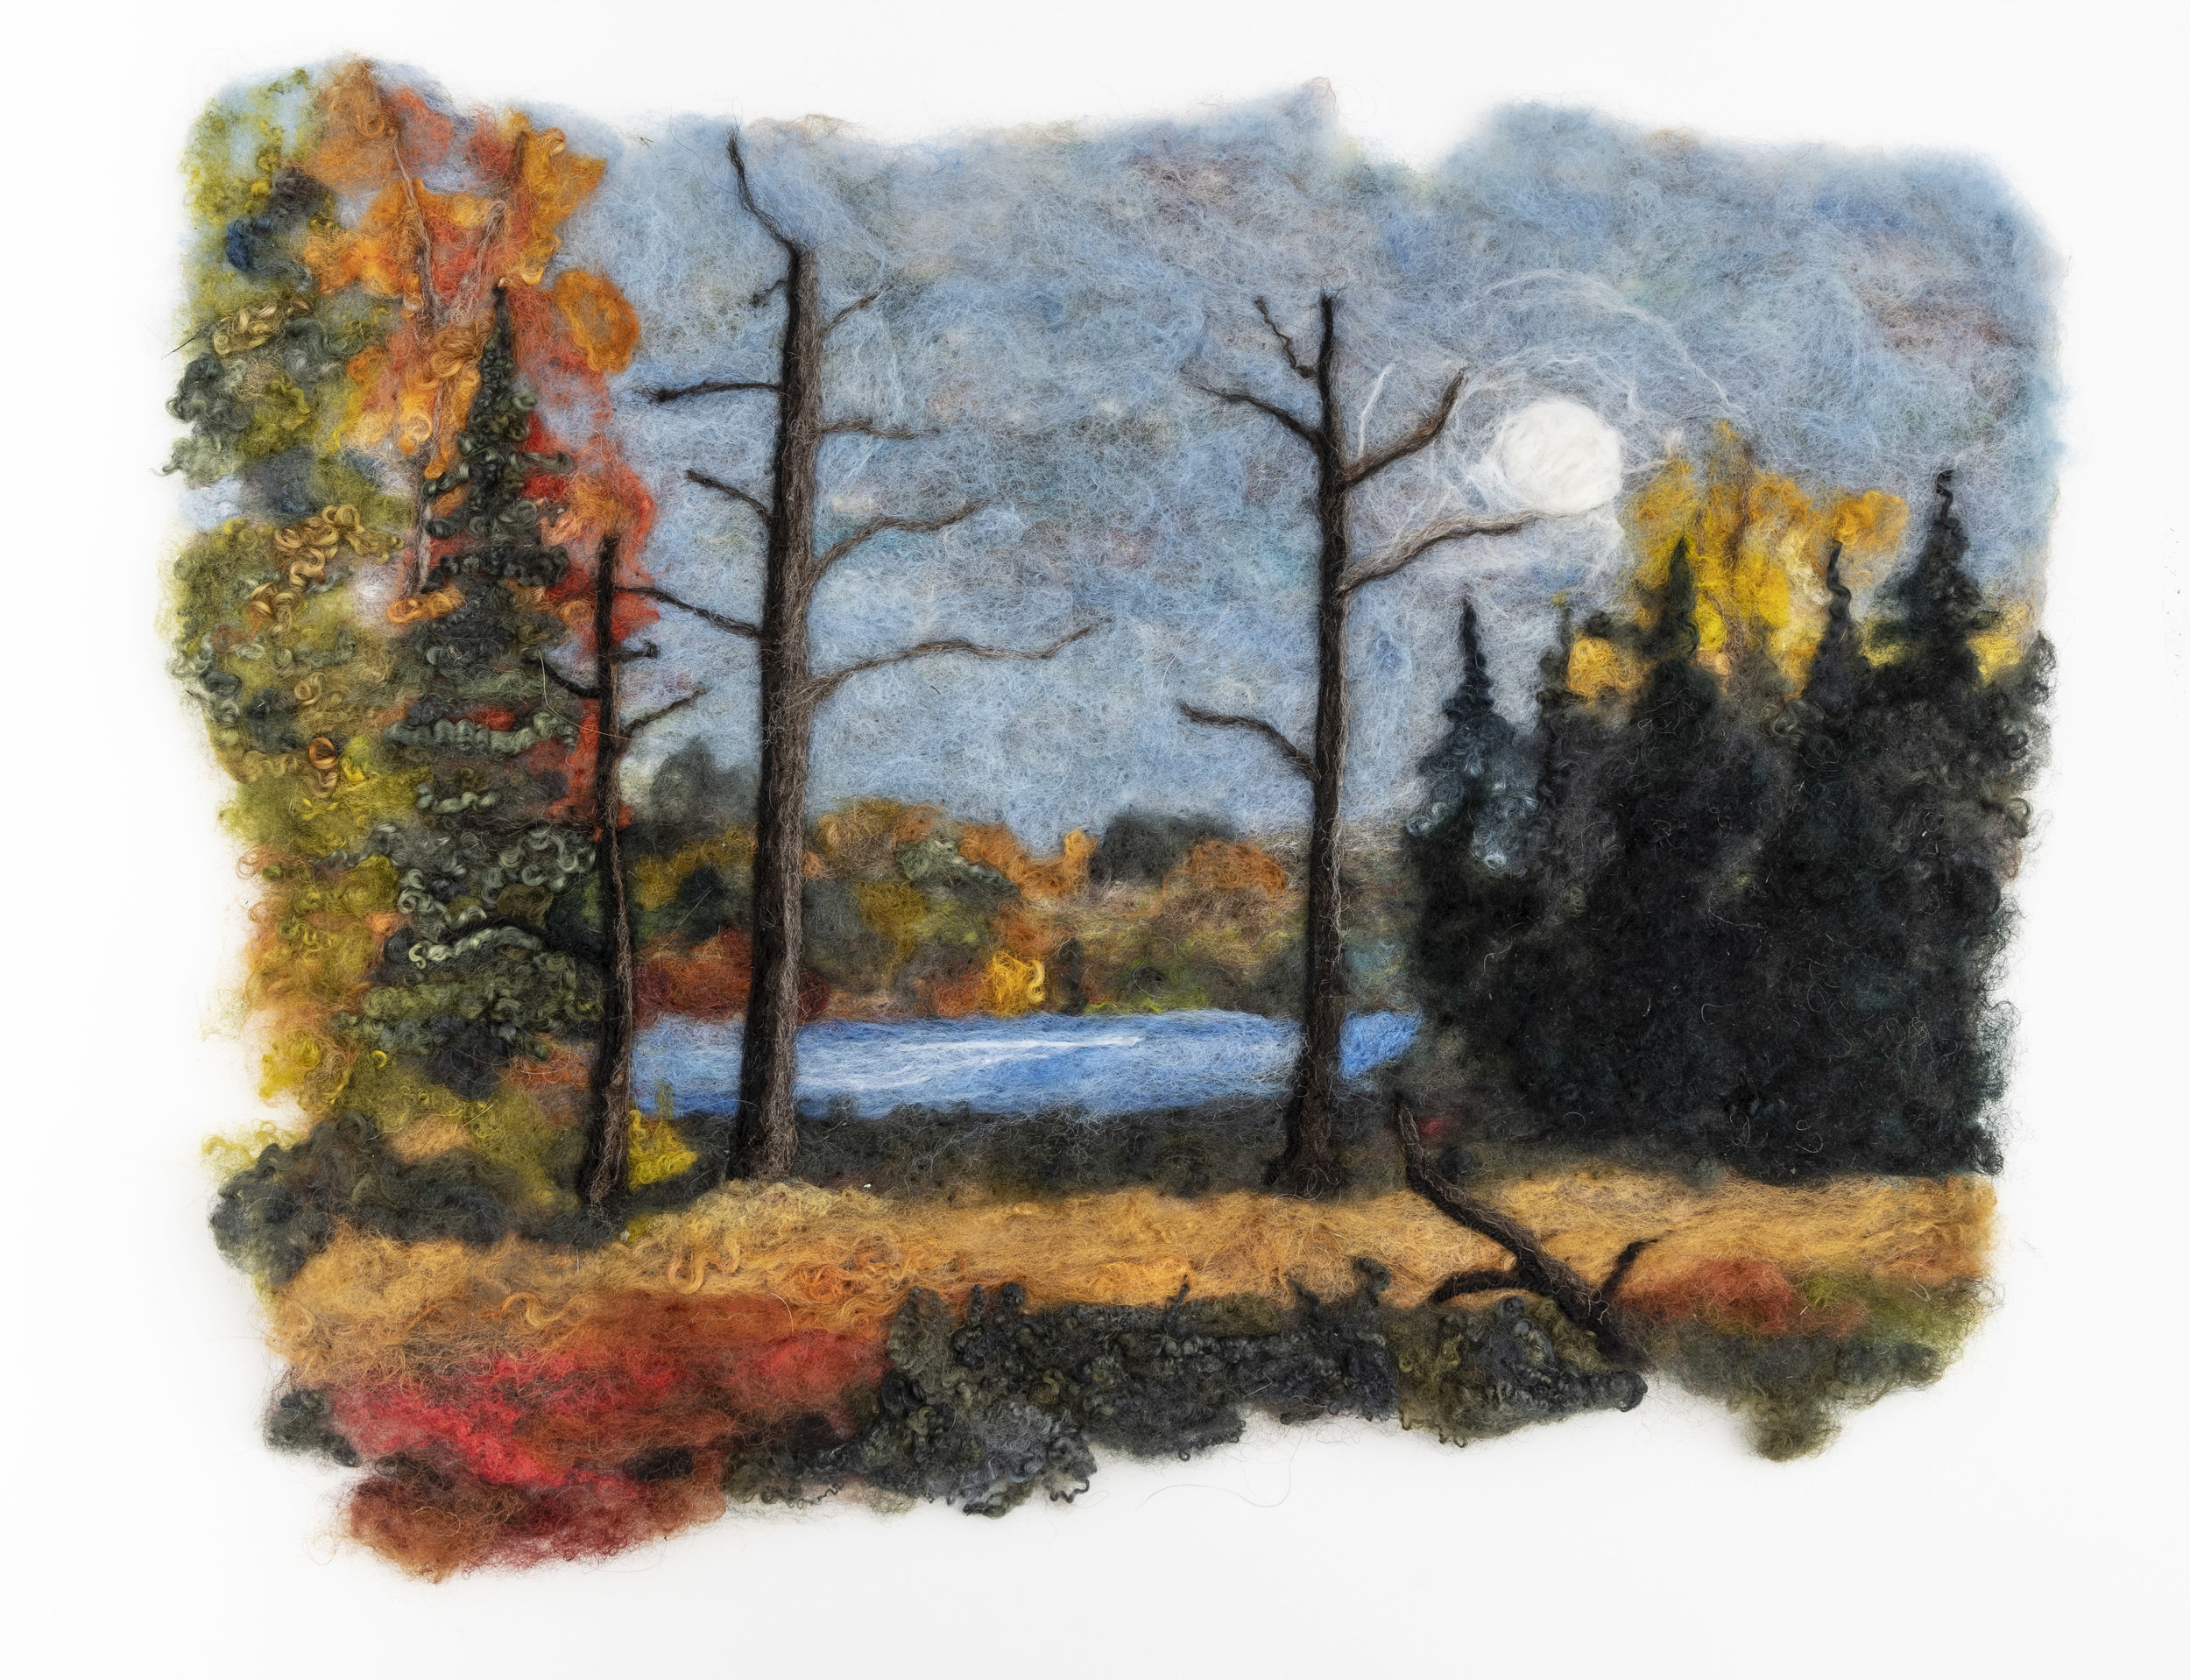 Limberlost   Original SOLD  available in reproductions on pillow, hat, placemat, coaster and card